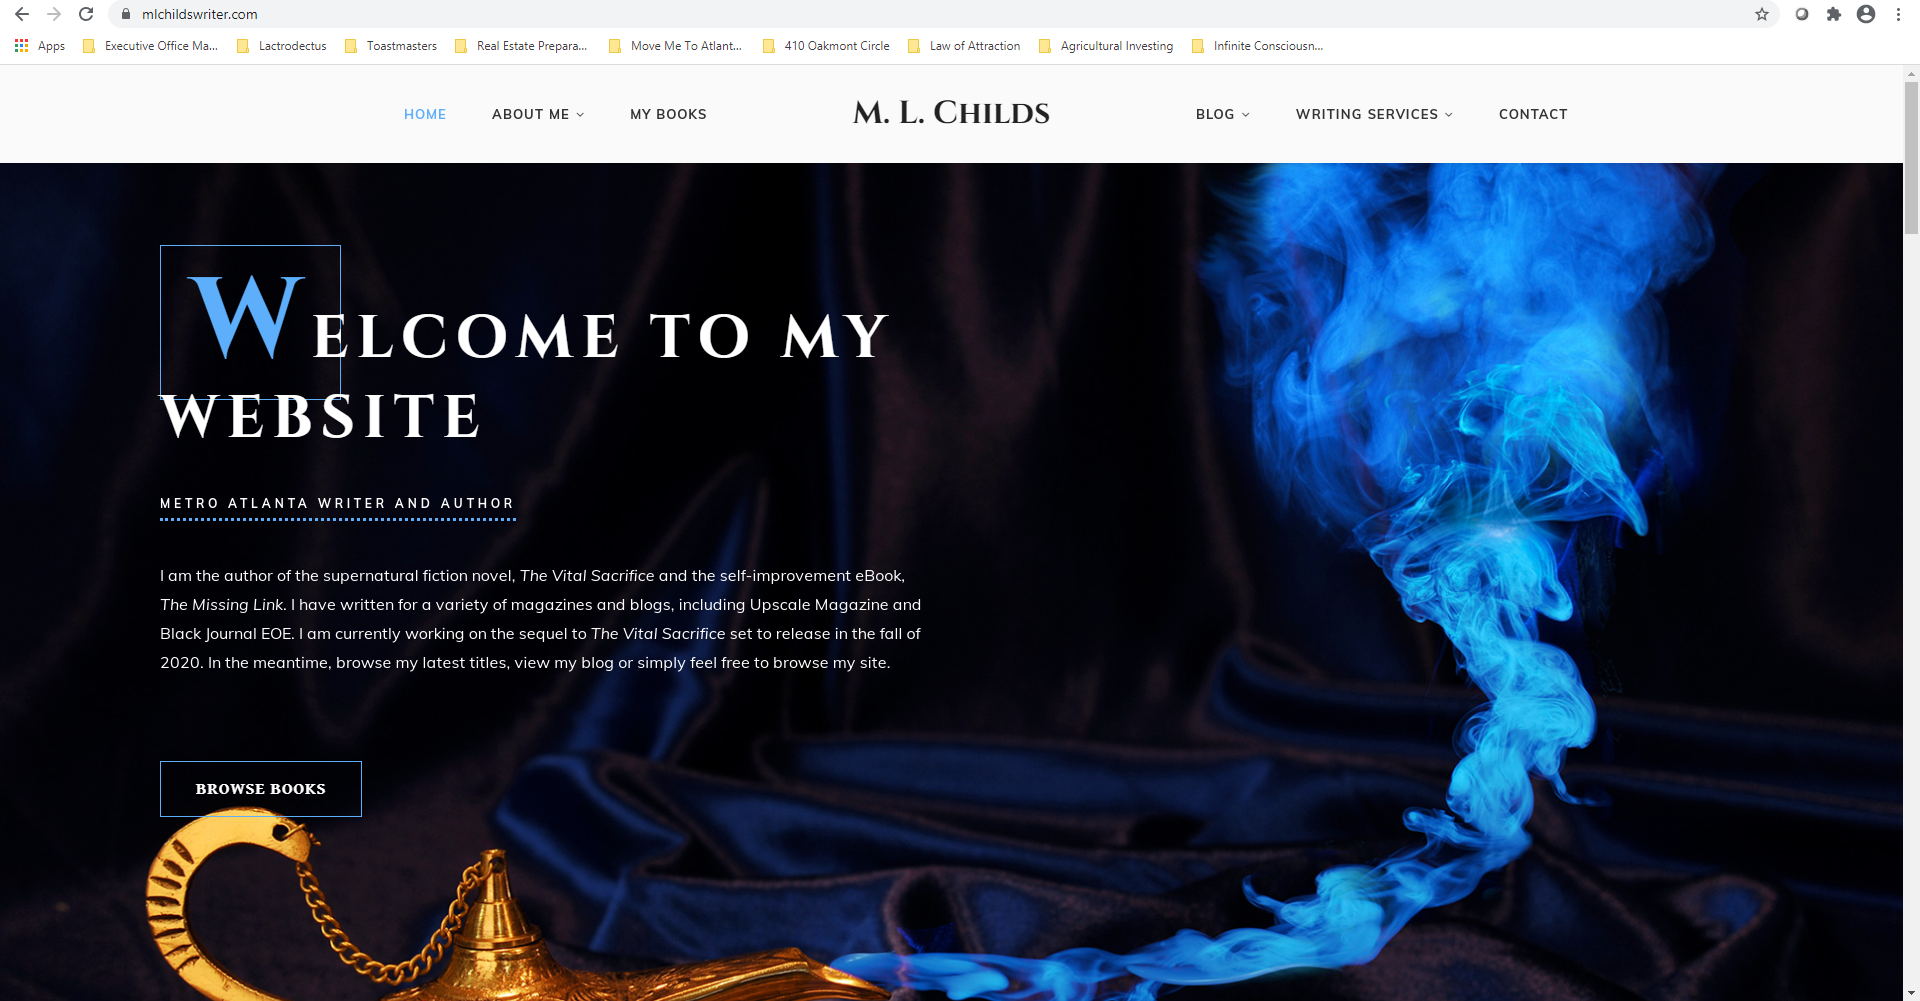 Screenshot of website mlchildswriter.com